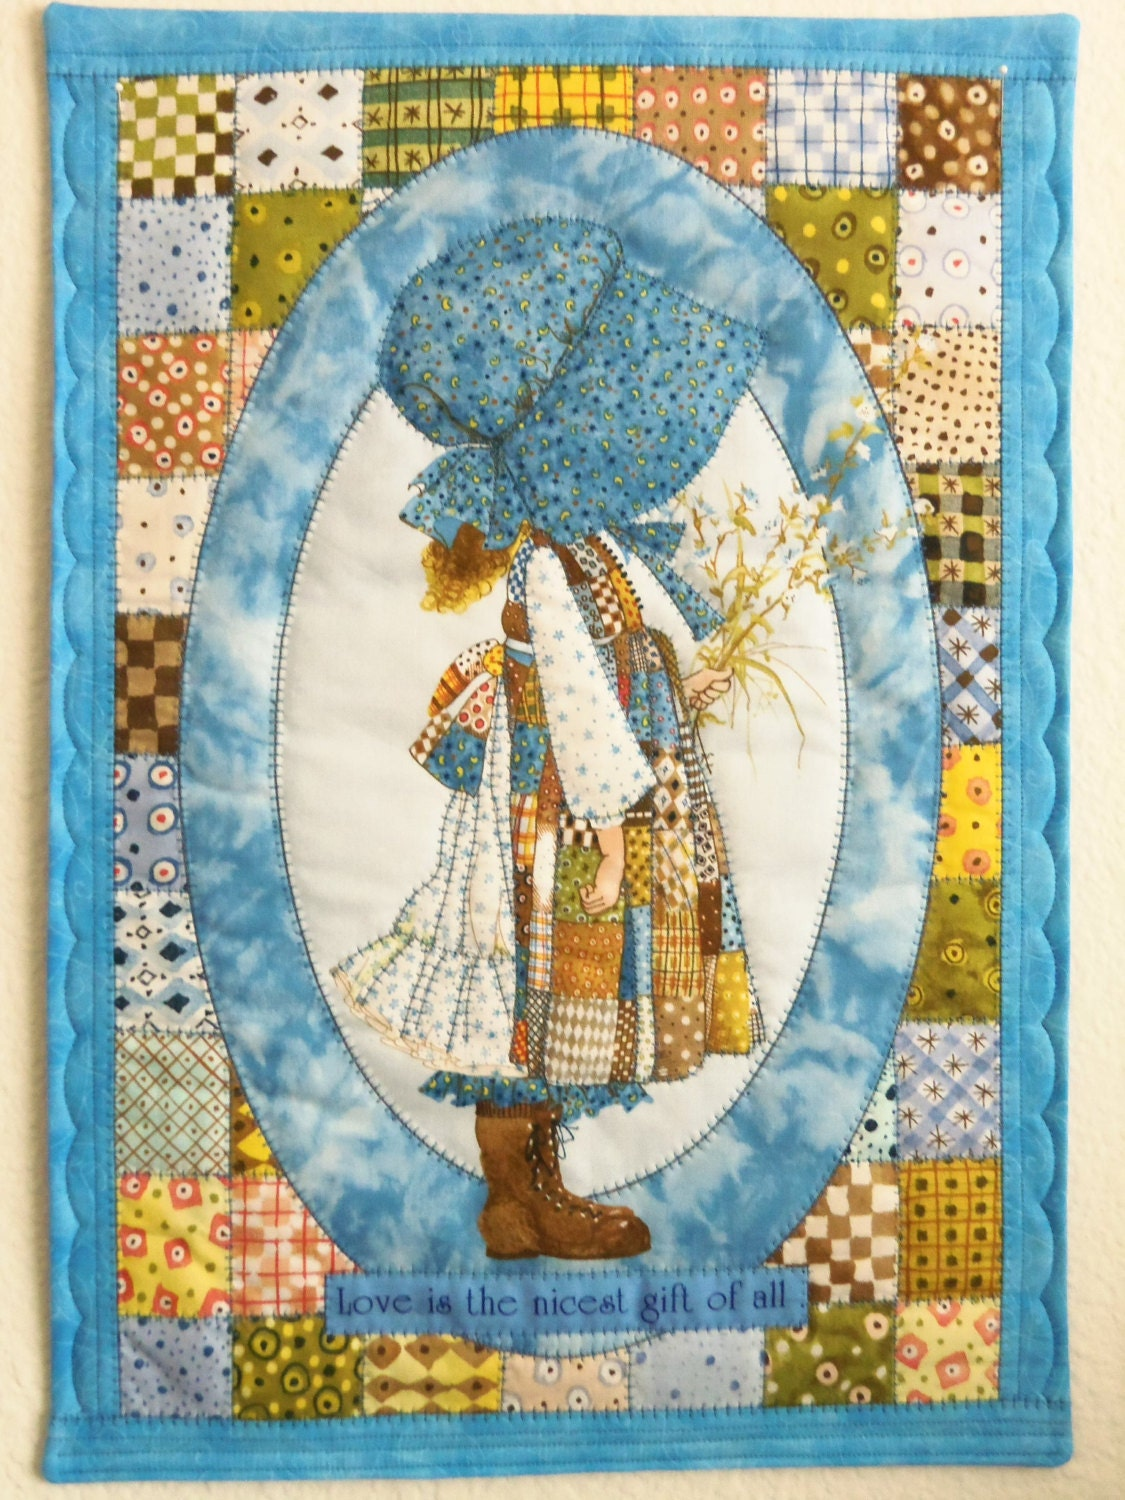 Wall Decor Holly Hobbie Quilted Wall Hanging Table Topper